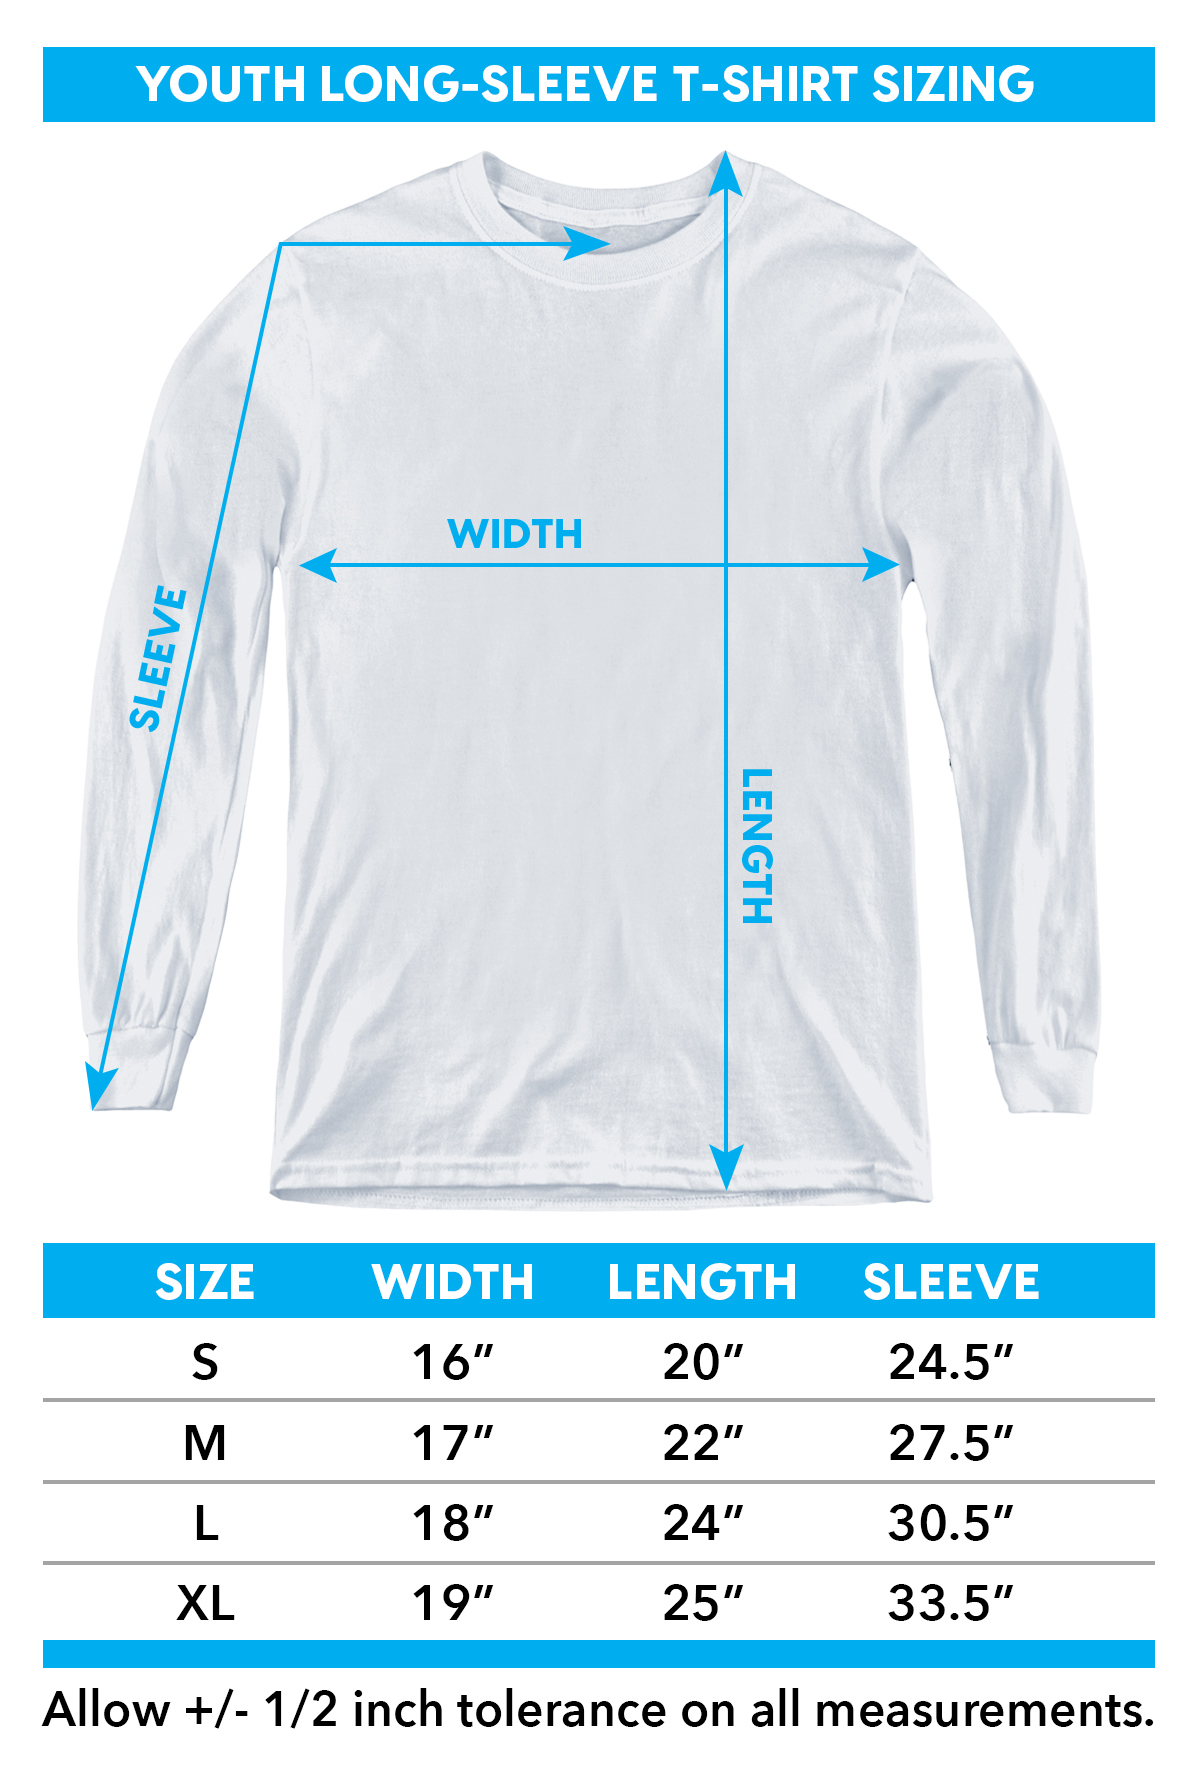 Sizing chart for Columbo Youth Long Sleeve T-Shirt - Just One More Thing TRV-CBS1055-YT